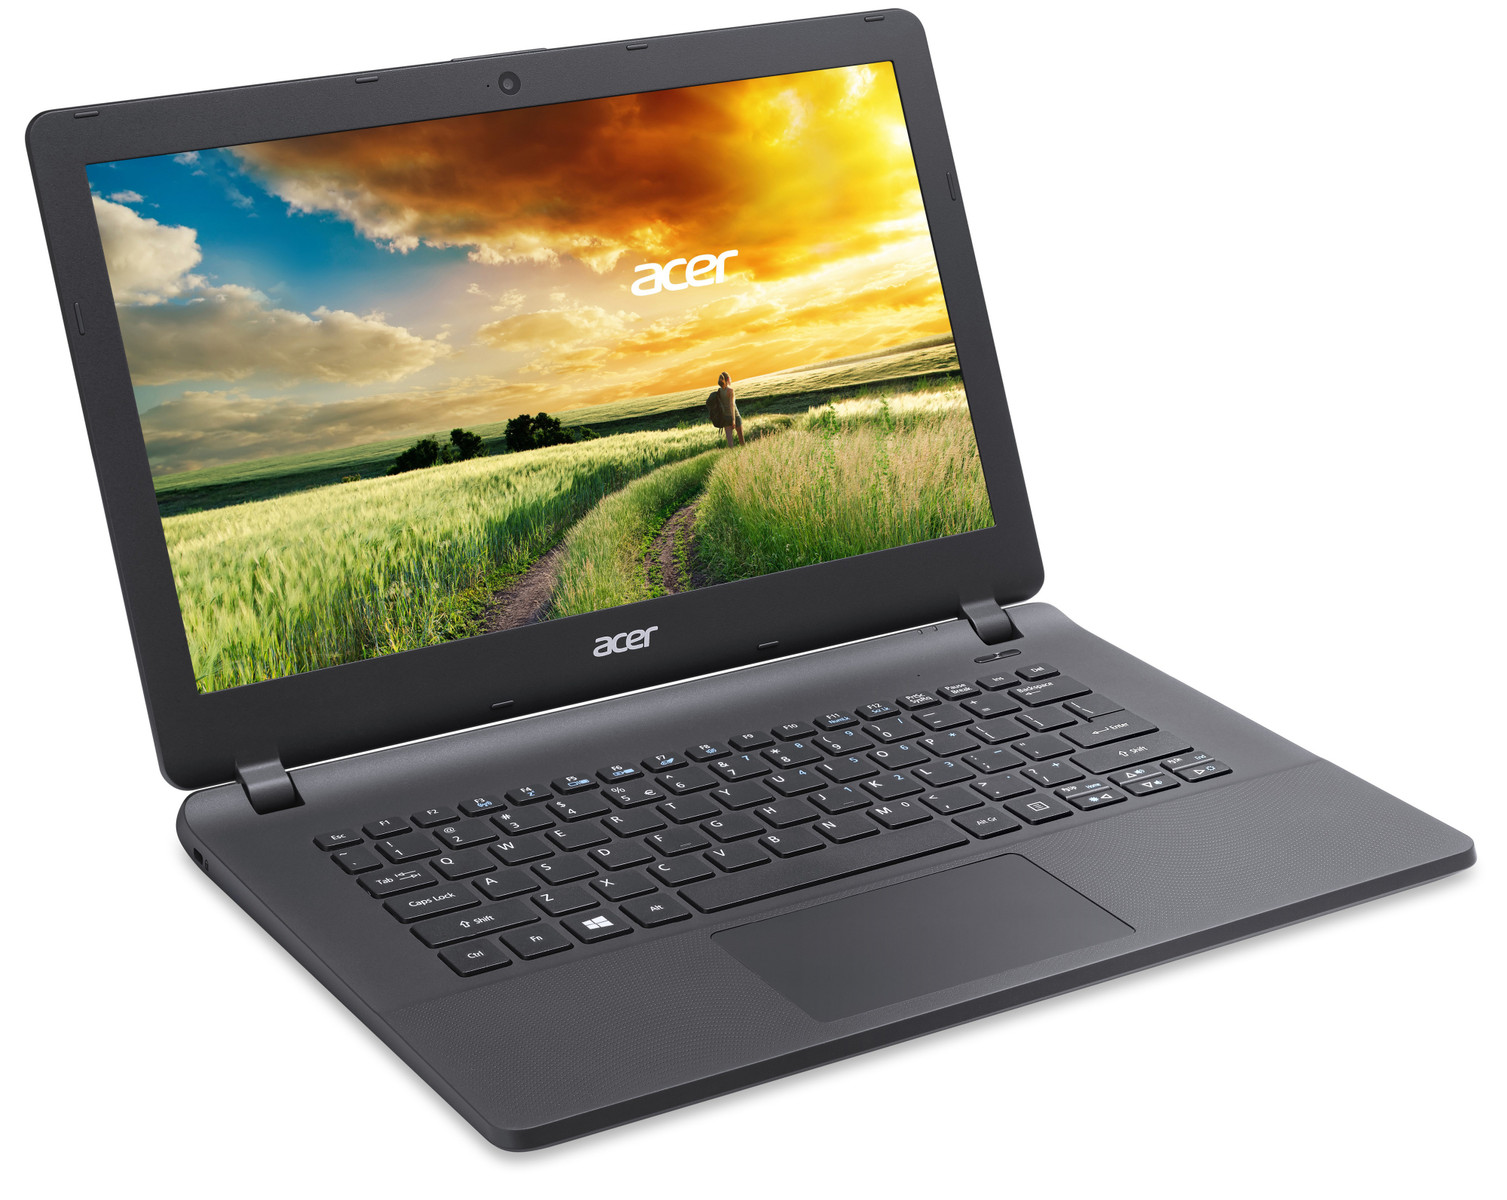 ACER ASPIRE ES1-331 ATHEROS BLUETOOTH WINDOWS 7 X64 DRIVER